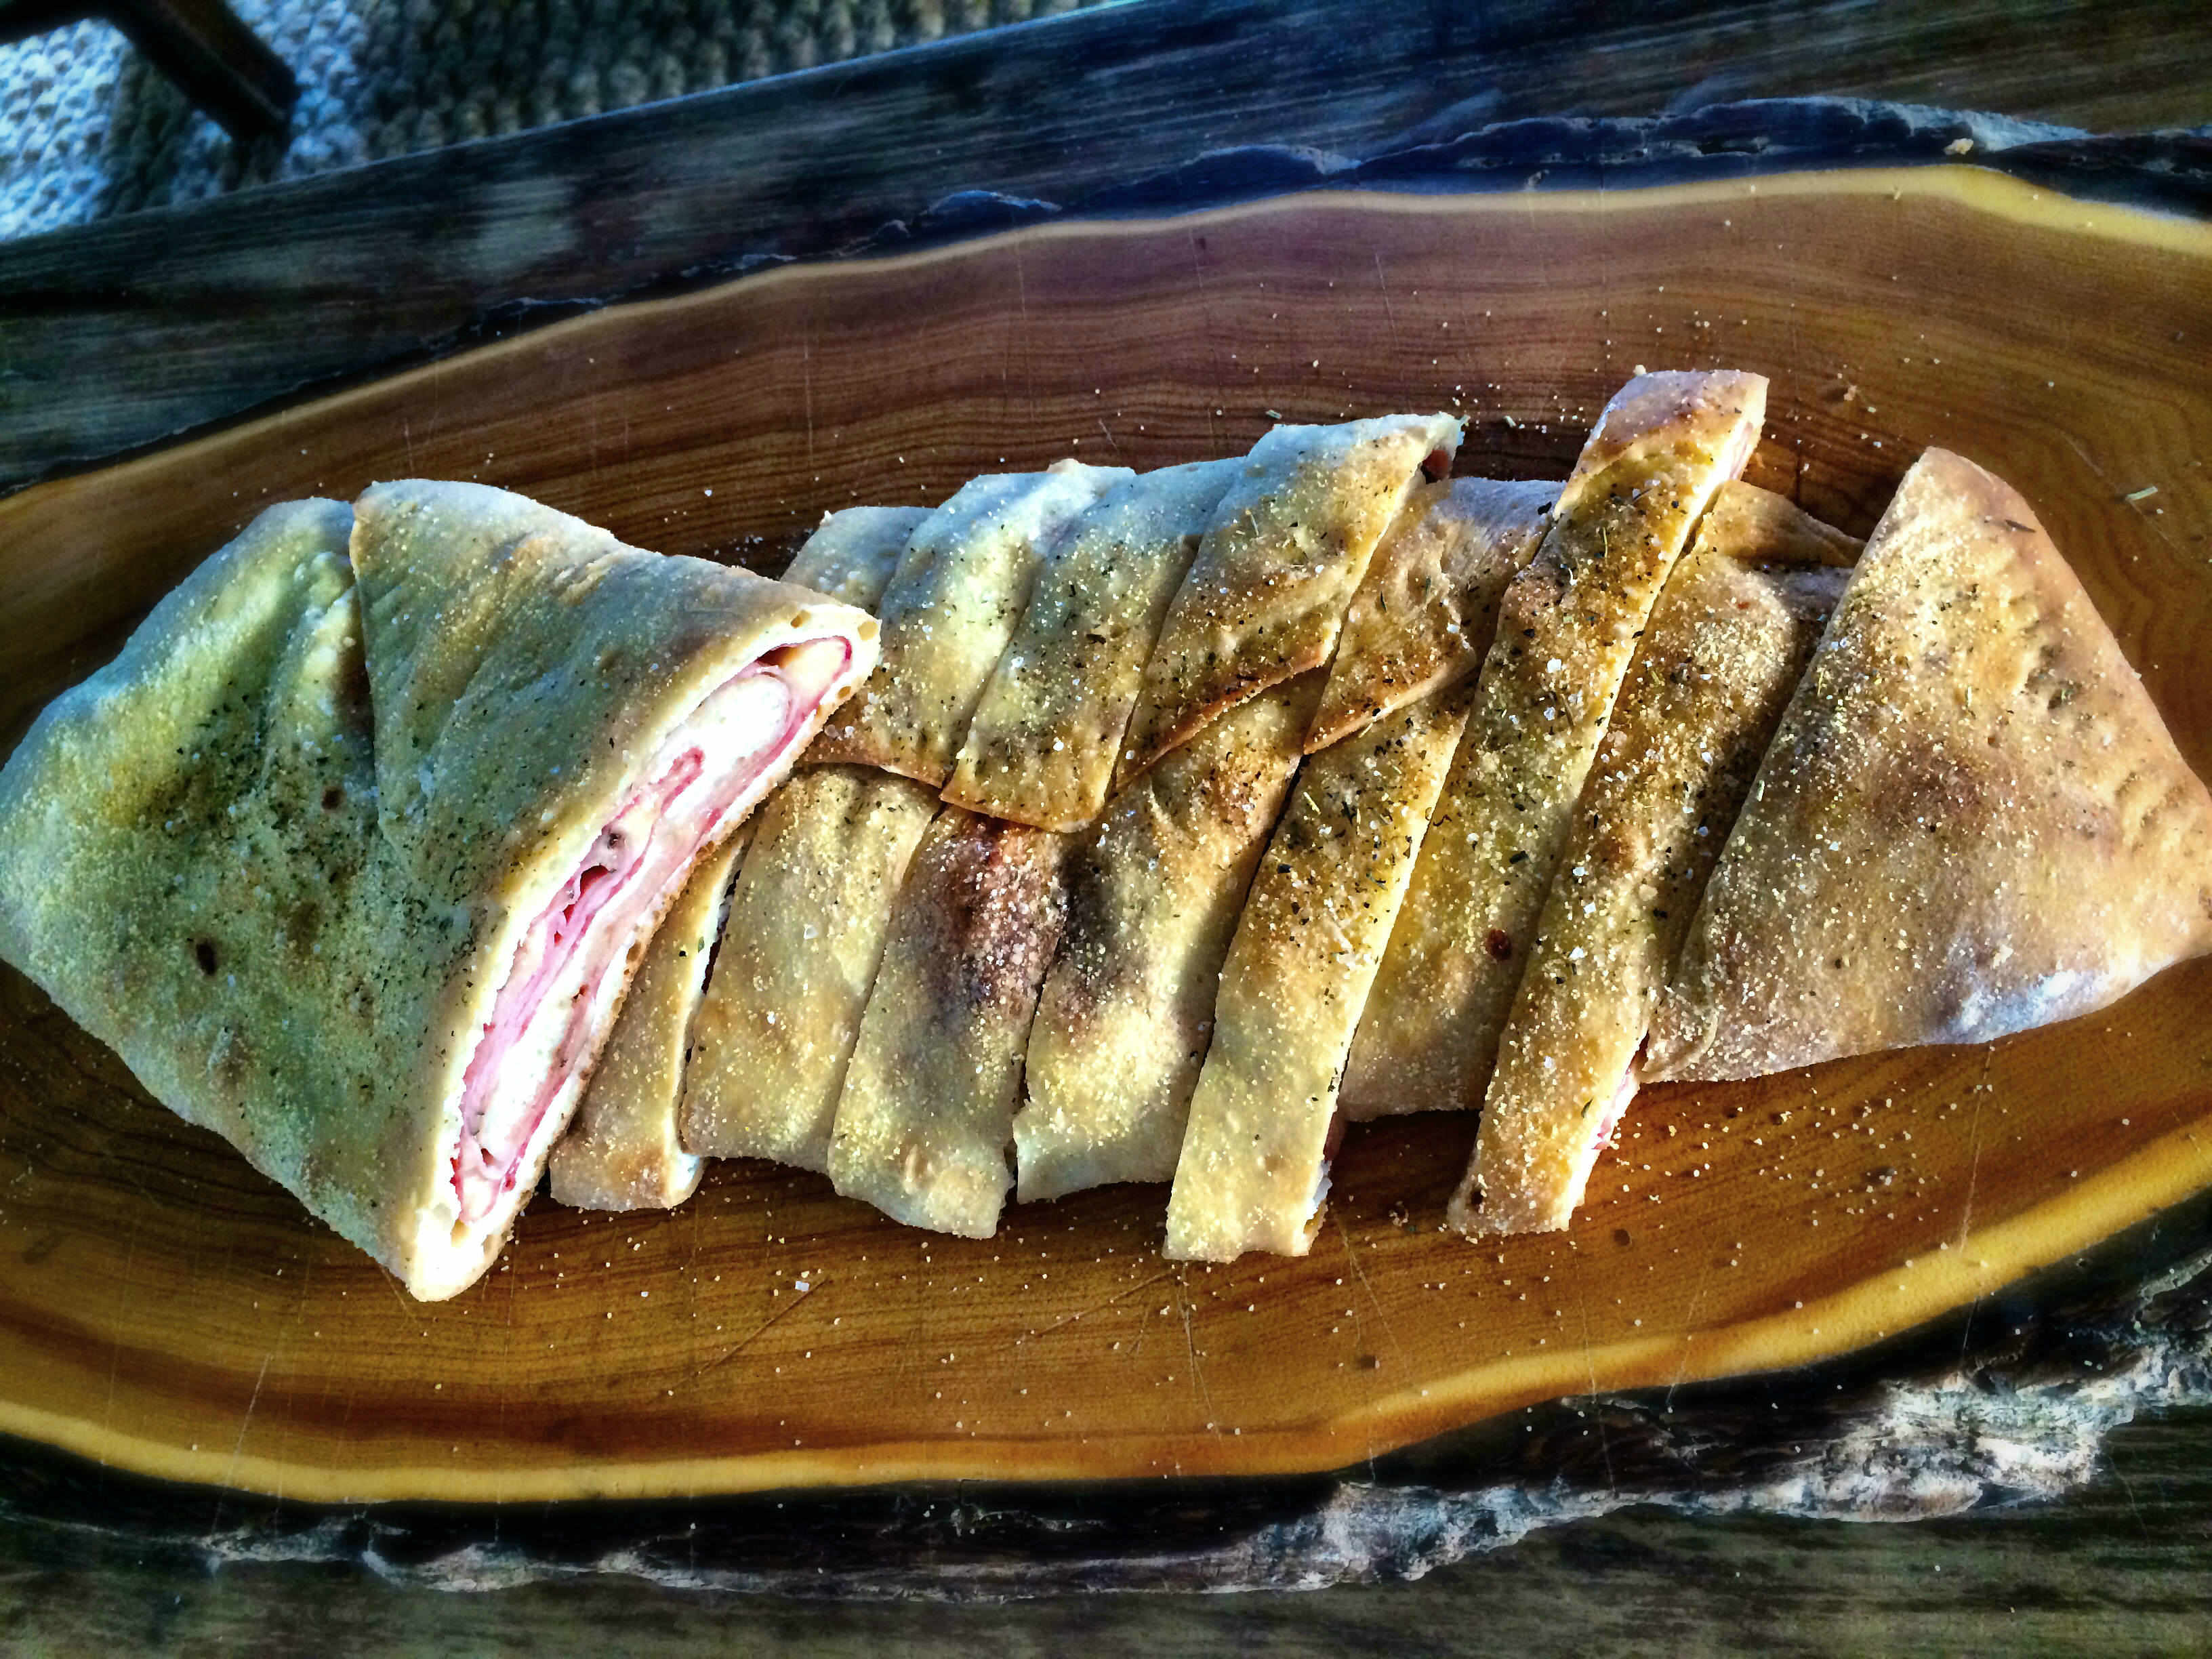 The Stromboli Bread